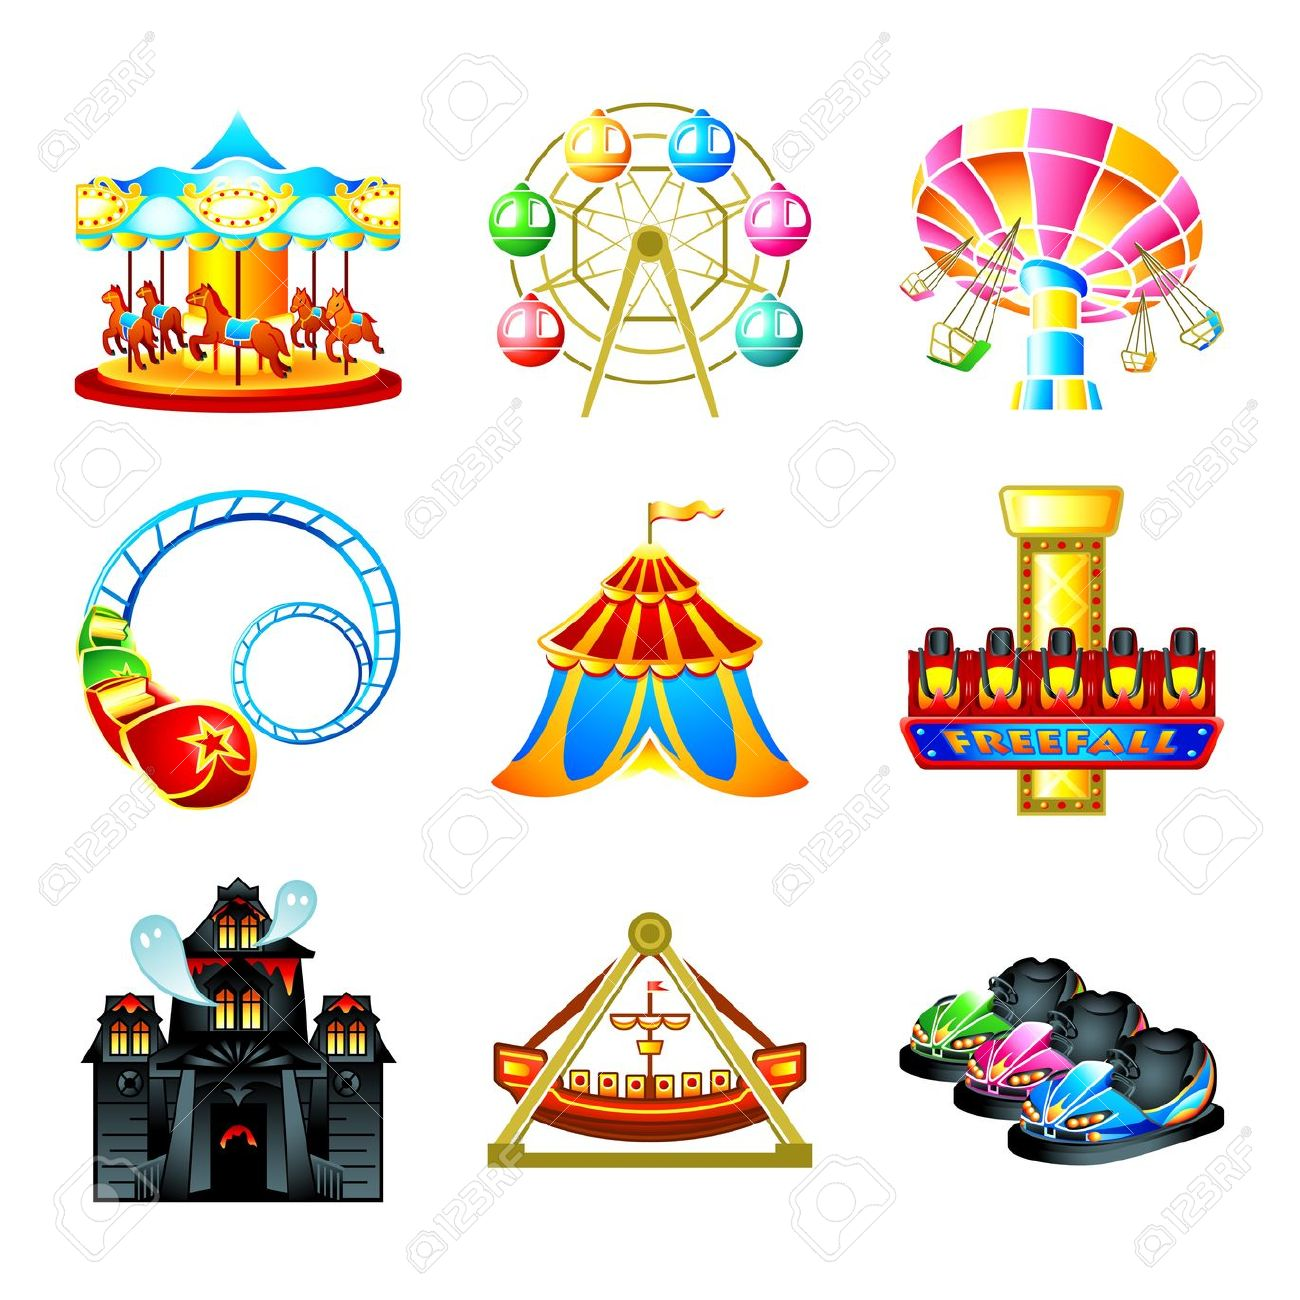 Amusement park ride clipart.